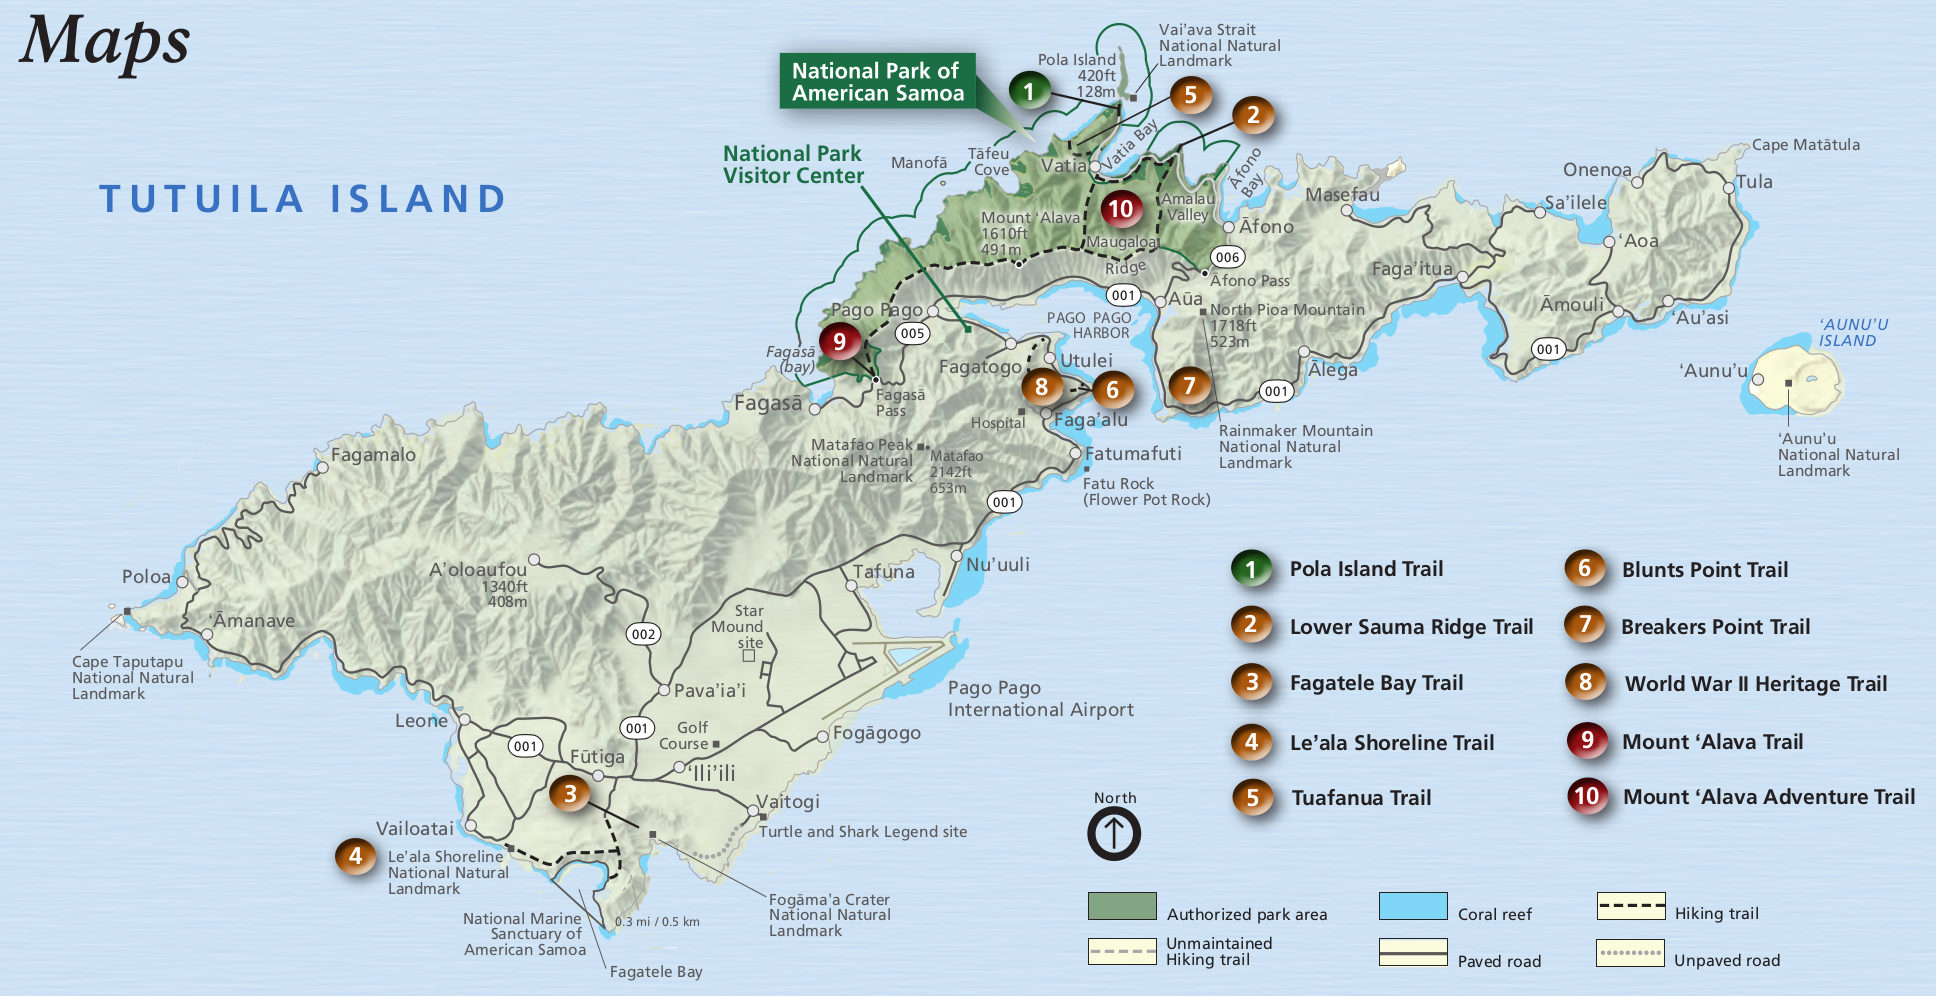 American Samoa Maps NPMapscom Just Free Maps Period - Us national parks interactive map